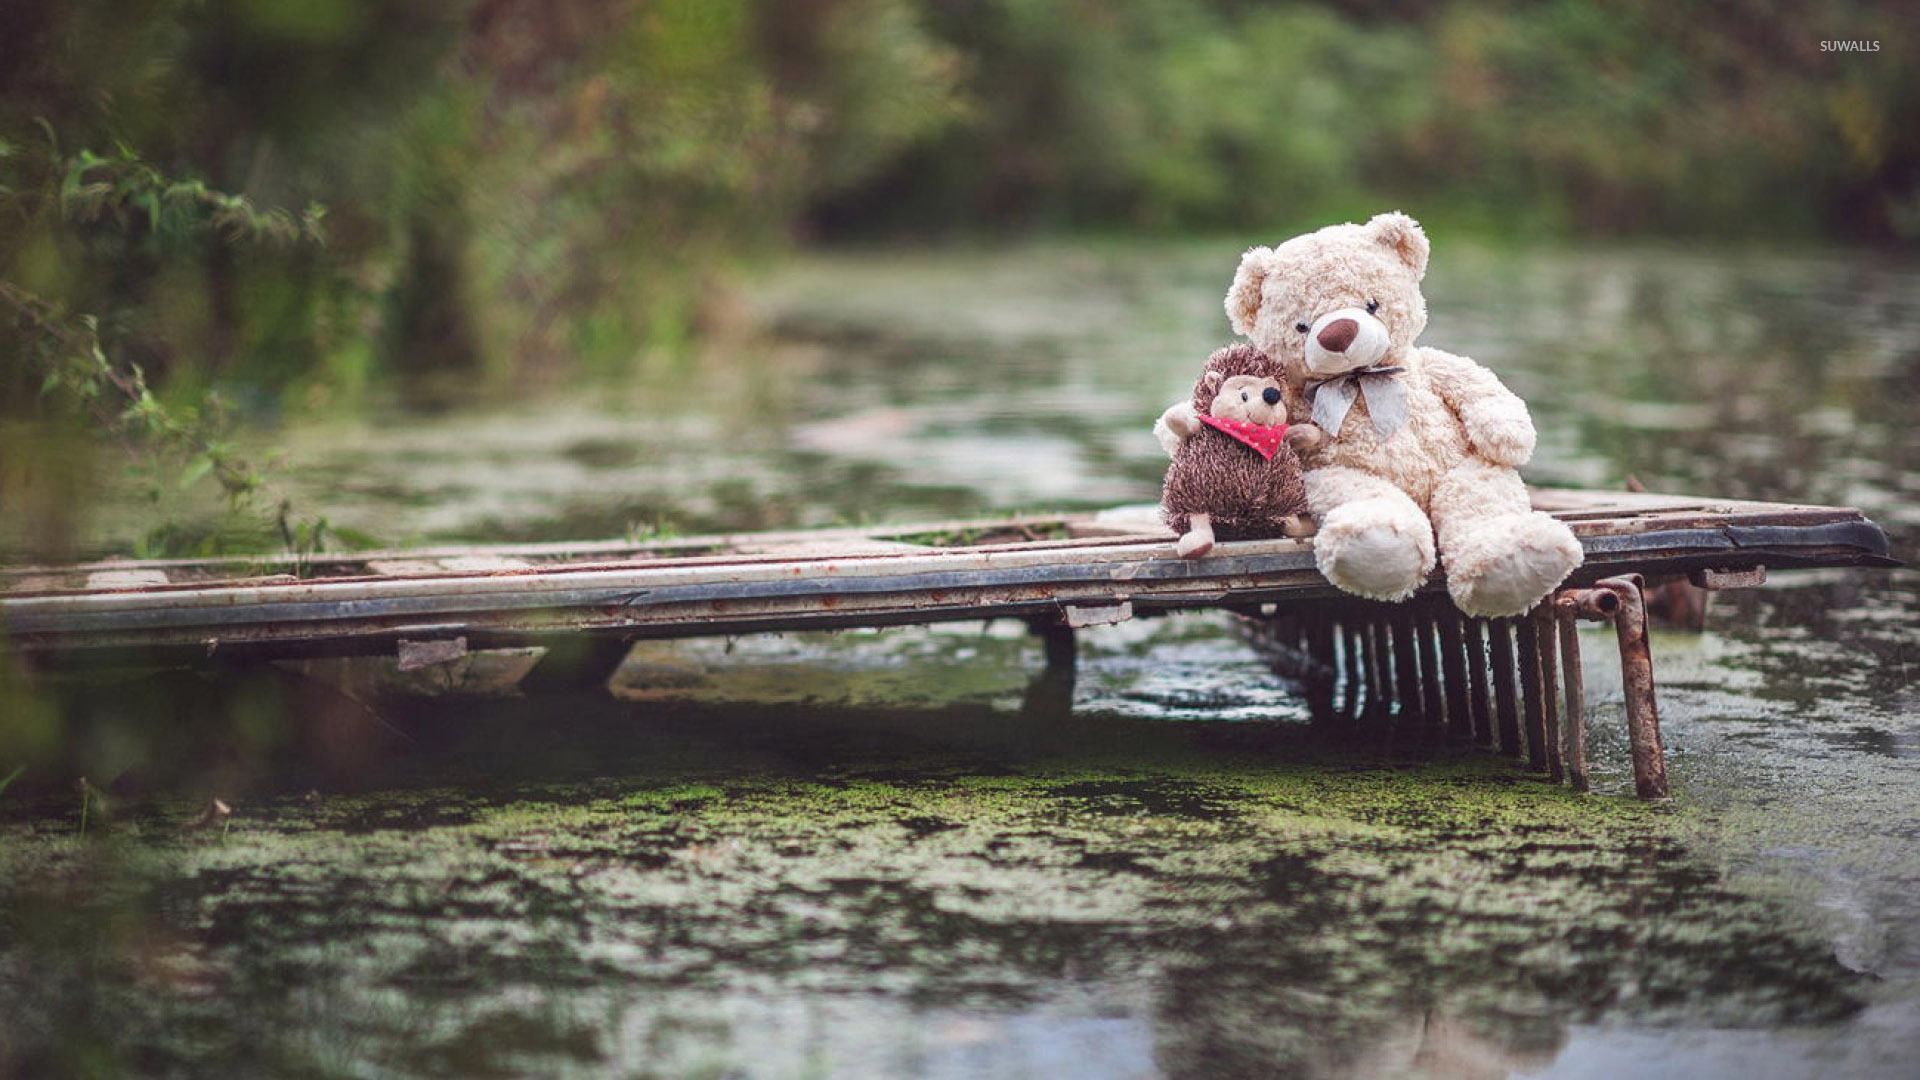 Download Sad Girl Wallpaper With Quotes Teddy Bear And His Hedgehog Friend On The Pier Wallpaper